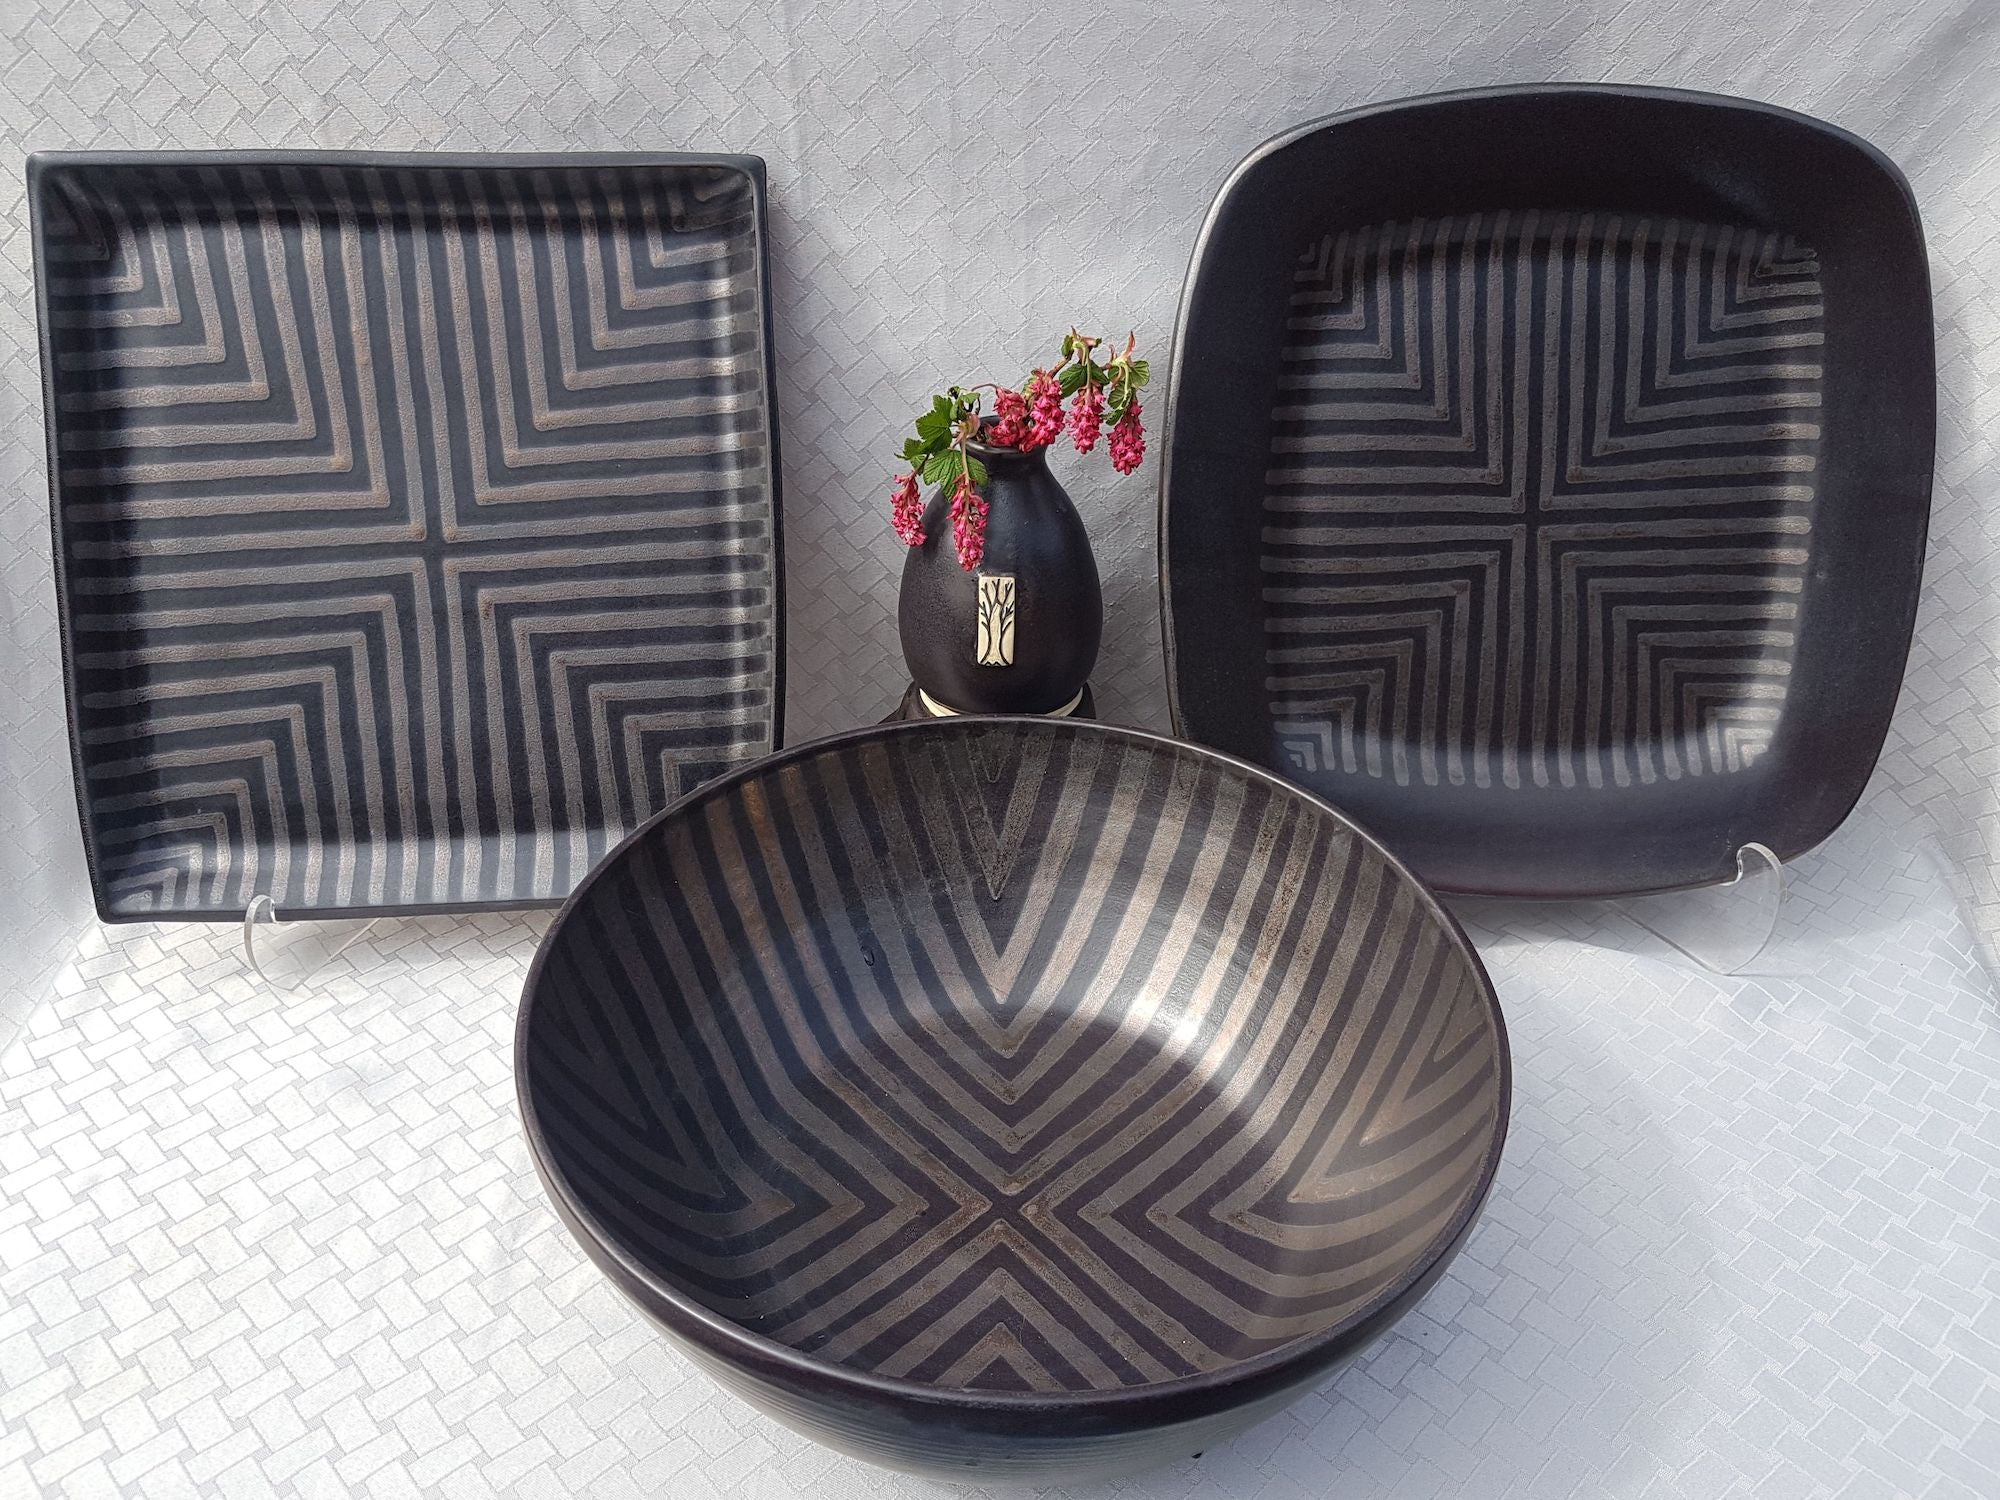 Semi-matte charcoal glaze with a hand-painted gold chevron pattern